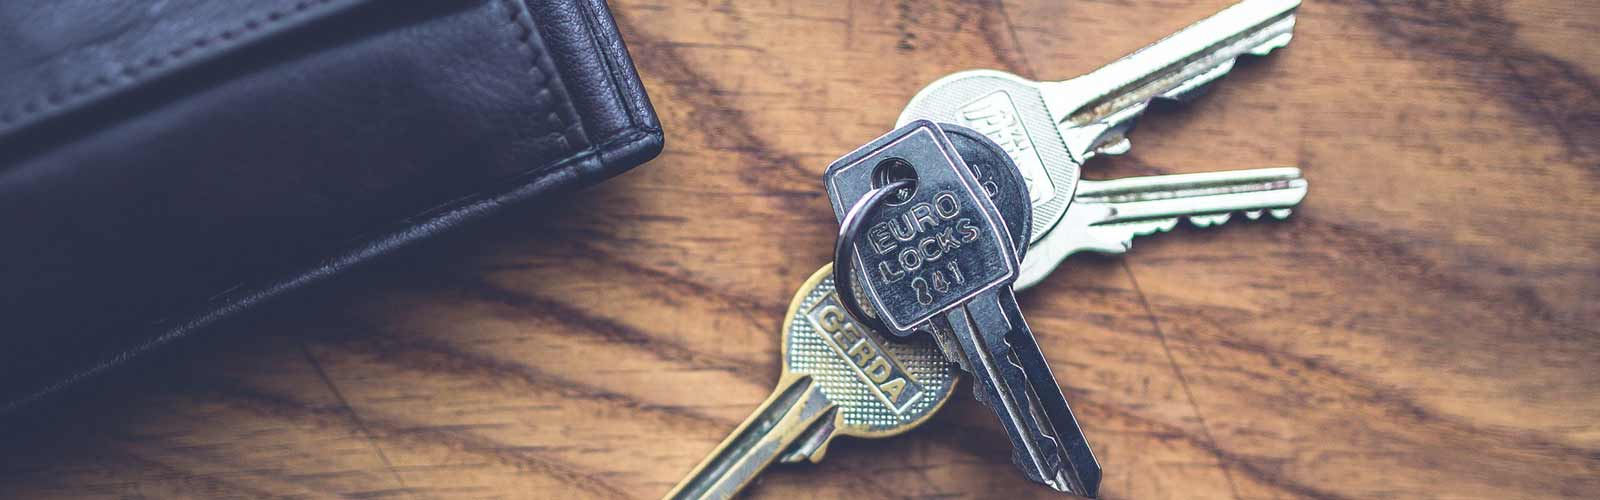 locksmith-cornwall-keys